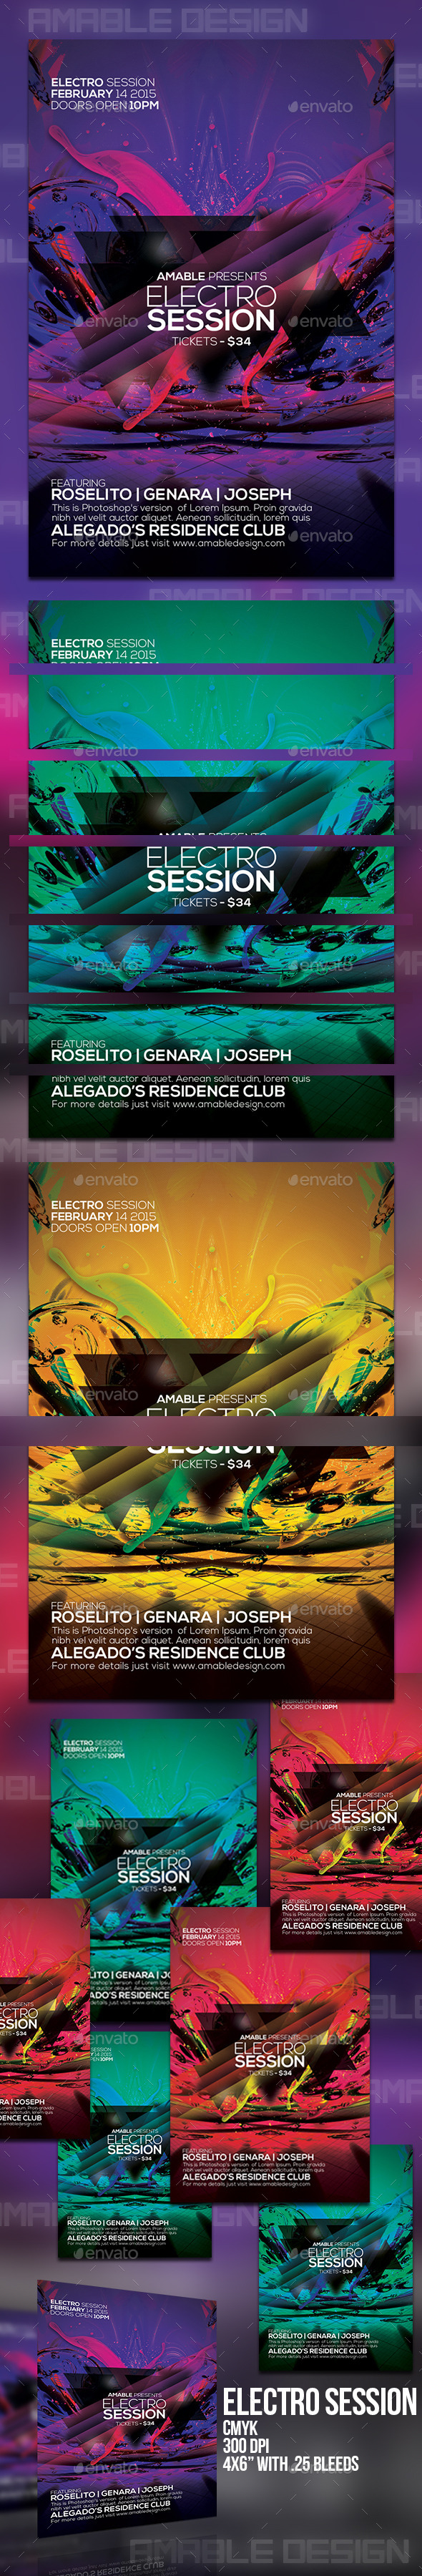 GraphicRiver Electro Session Flyer 10333545